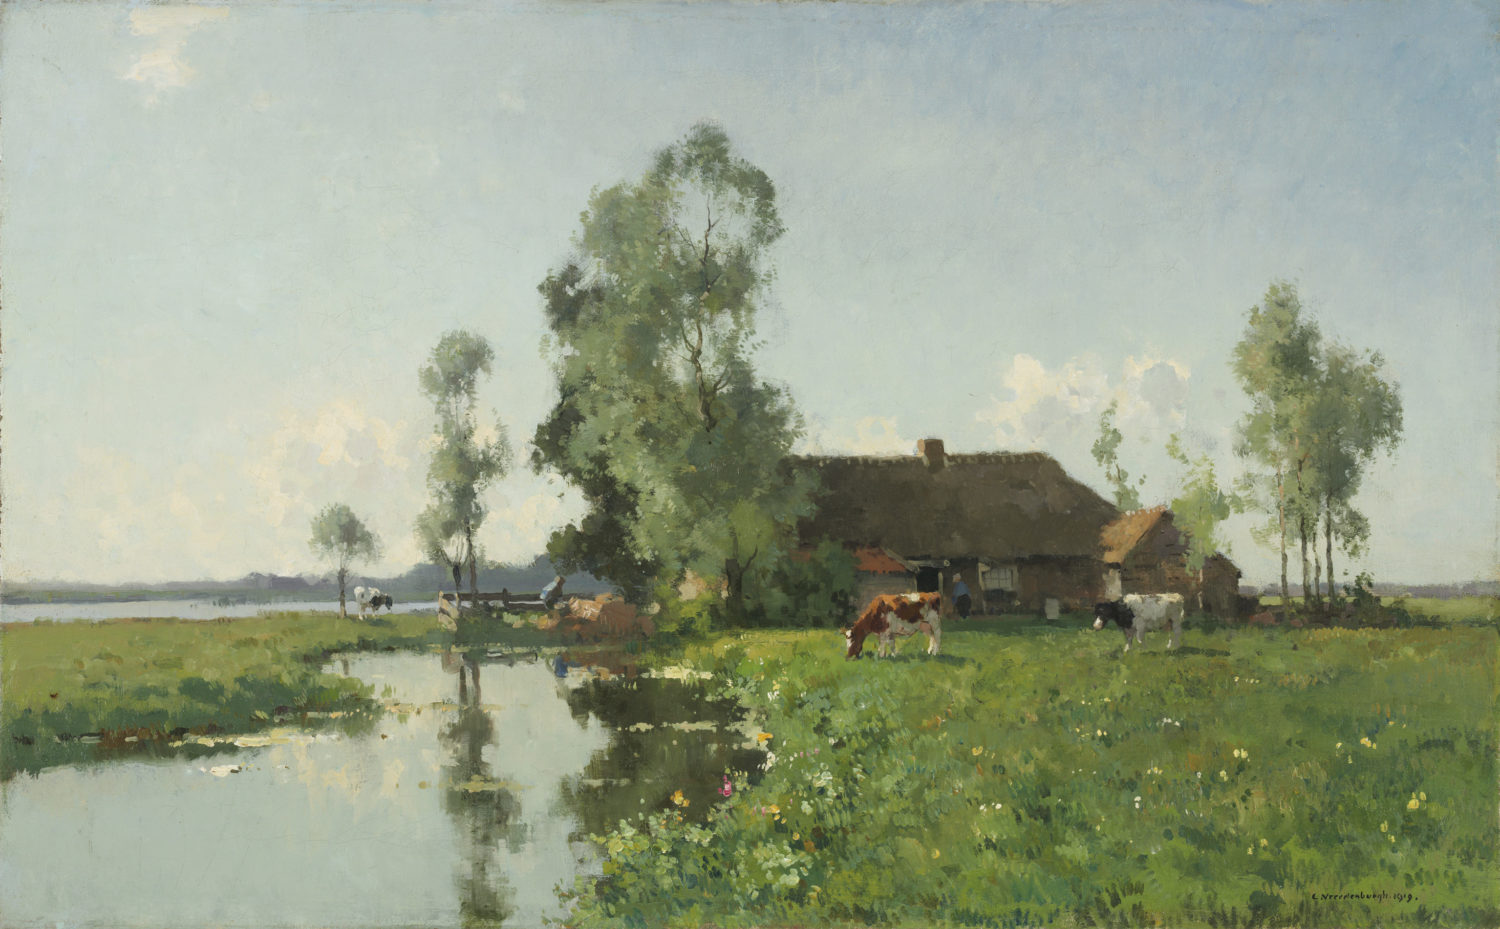 Cornelis Vreedenburgh | A polder landscape with a farm and cows | Kunsthandel Bies | Bies Gallery